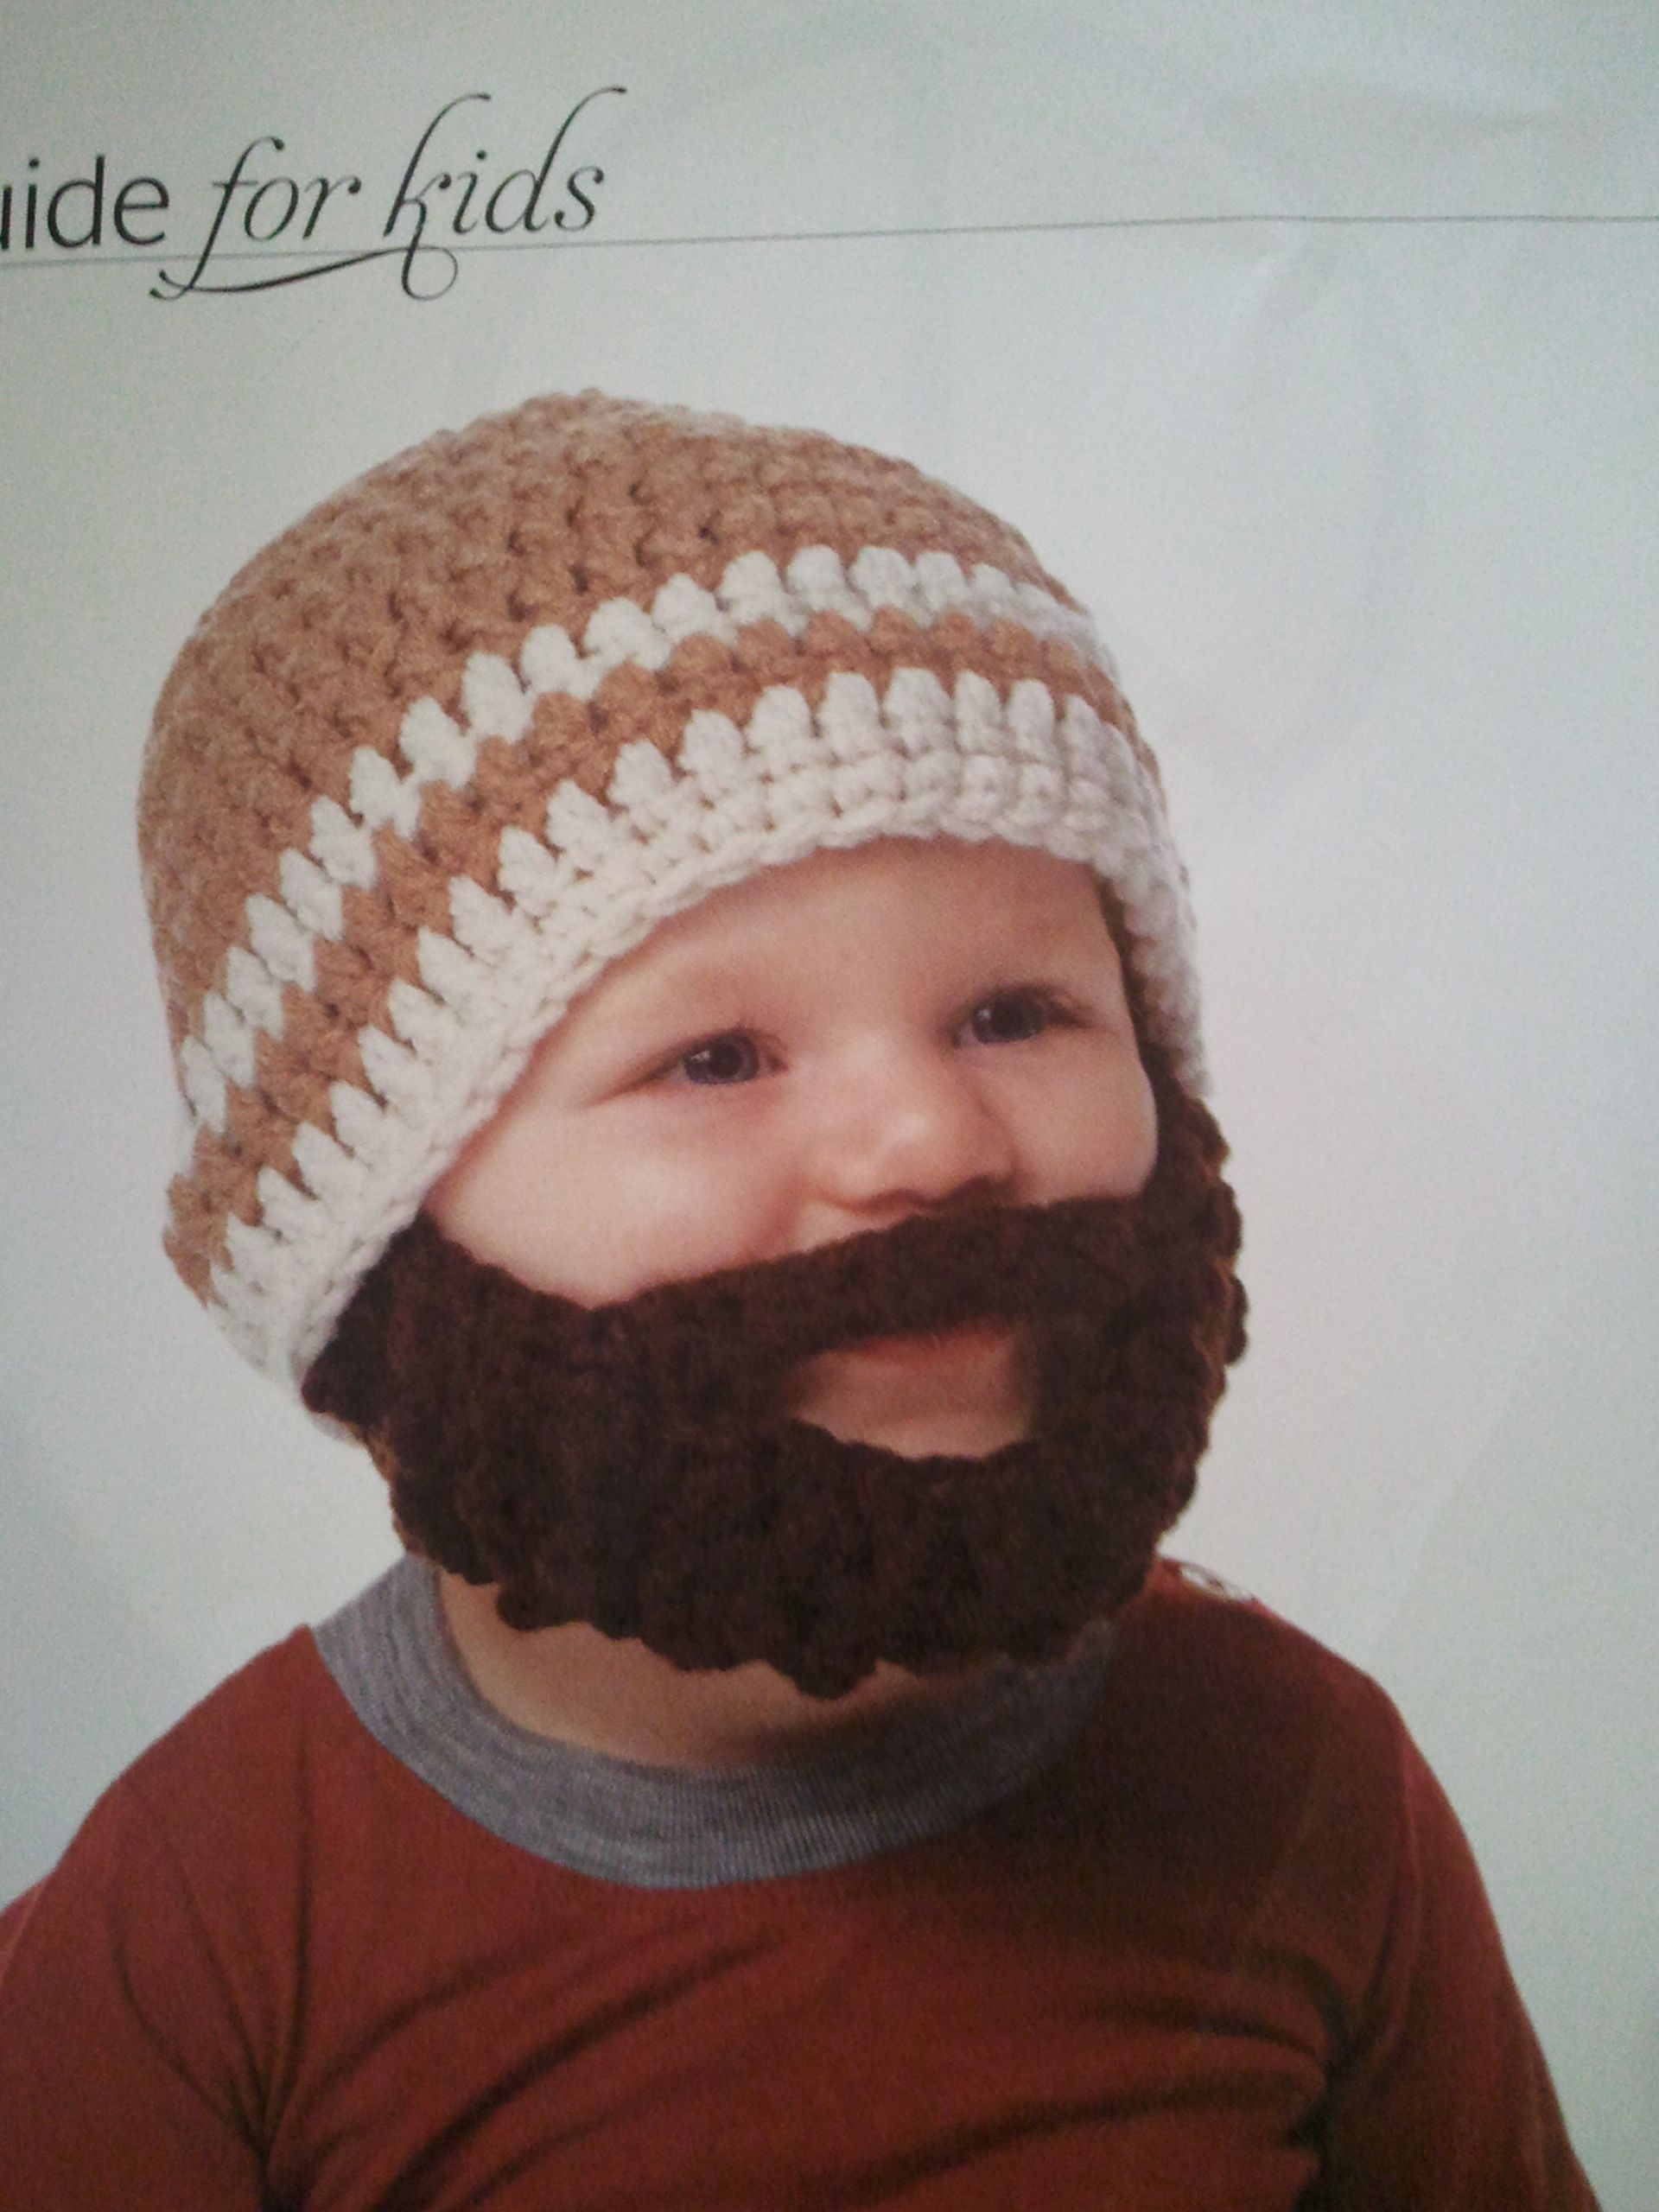 6592ad656ca Baby Beard - ski mask for kids